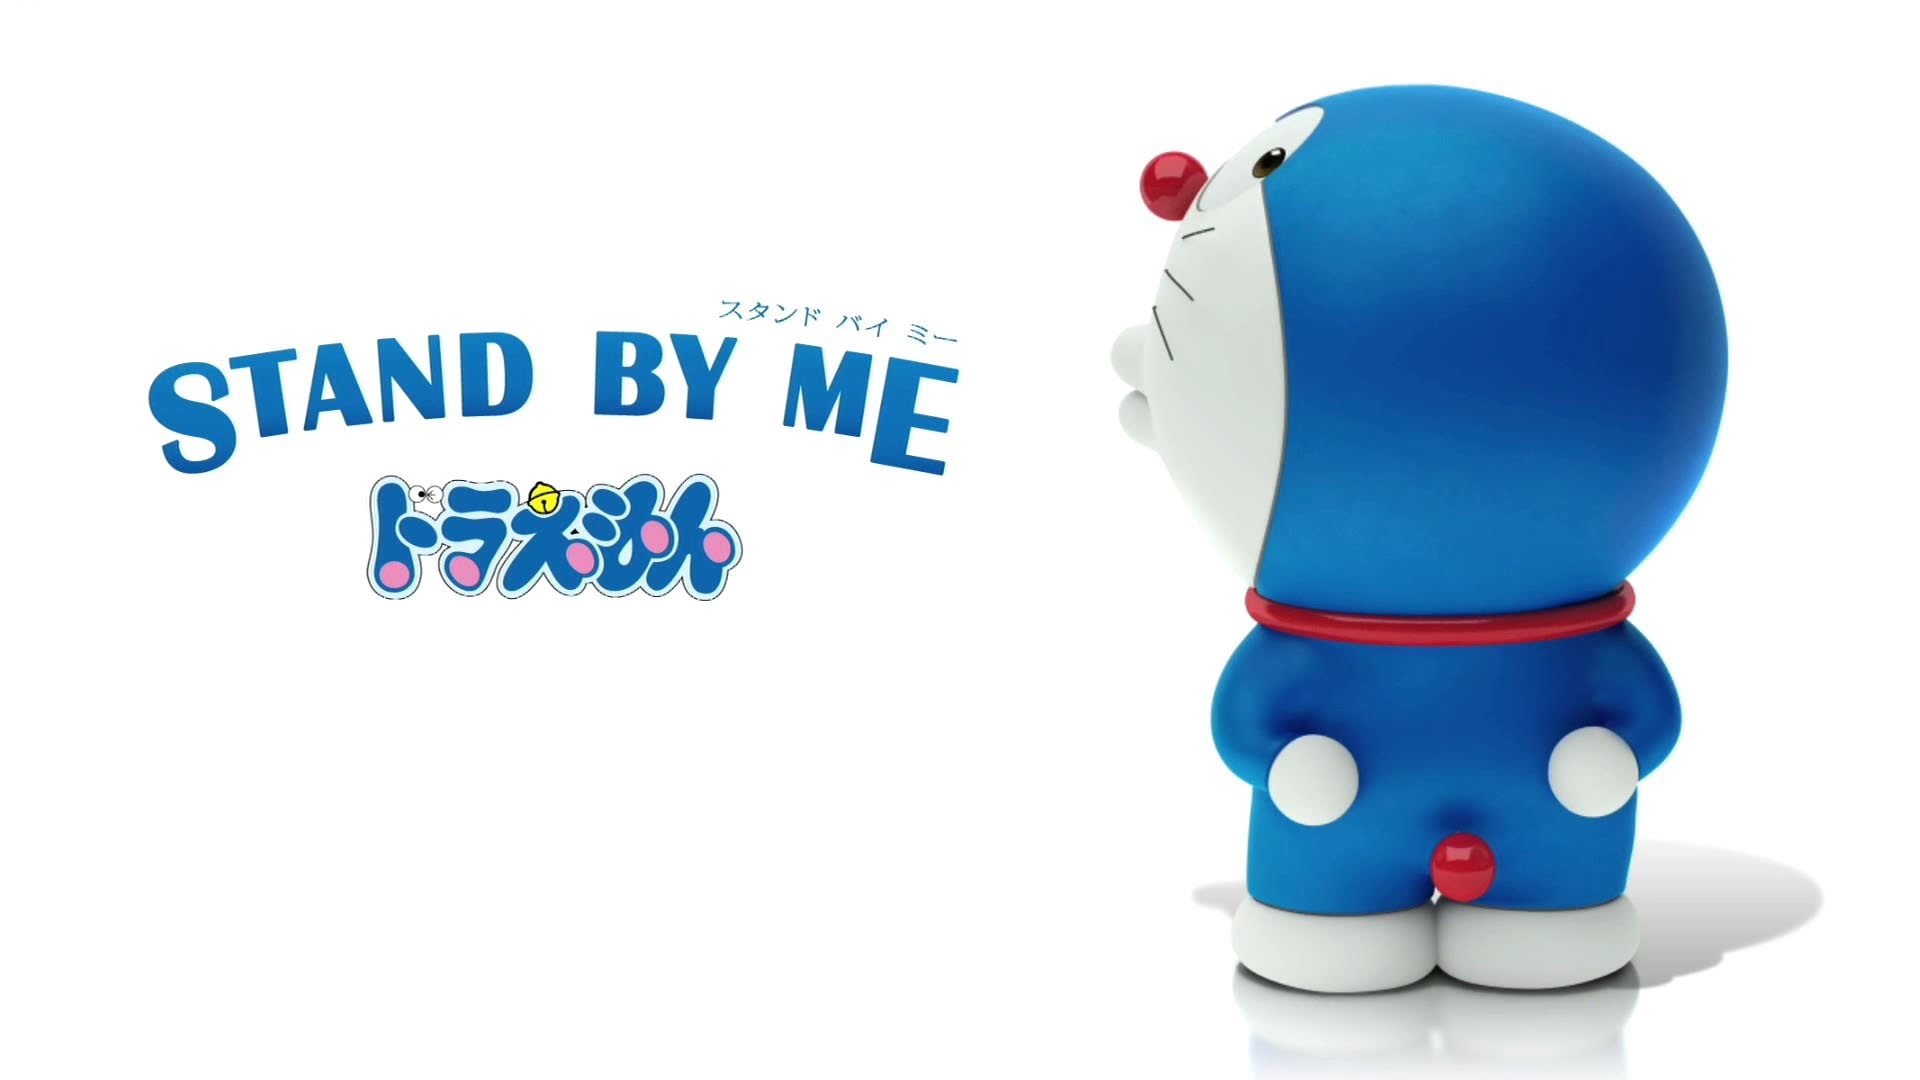 Stand By Me Doraemon Wallpaper 2